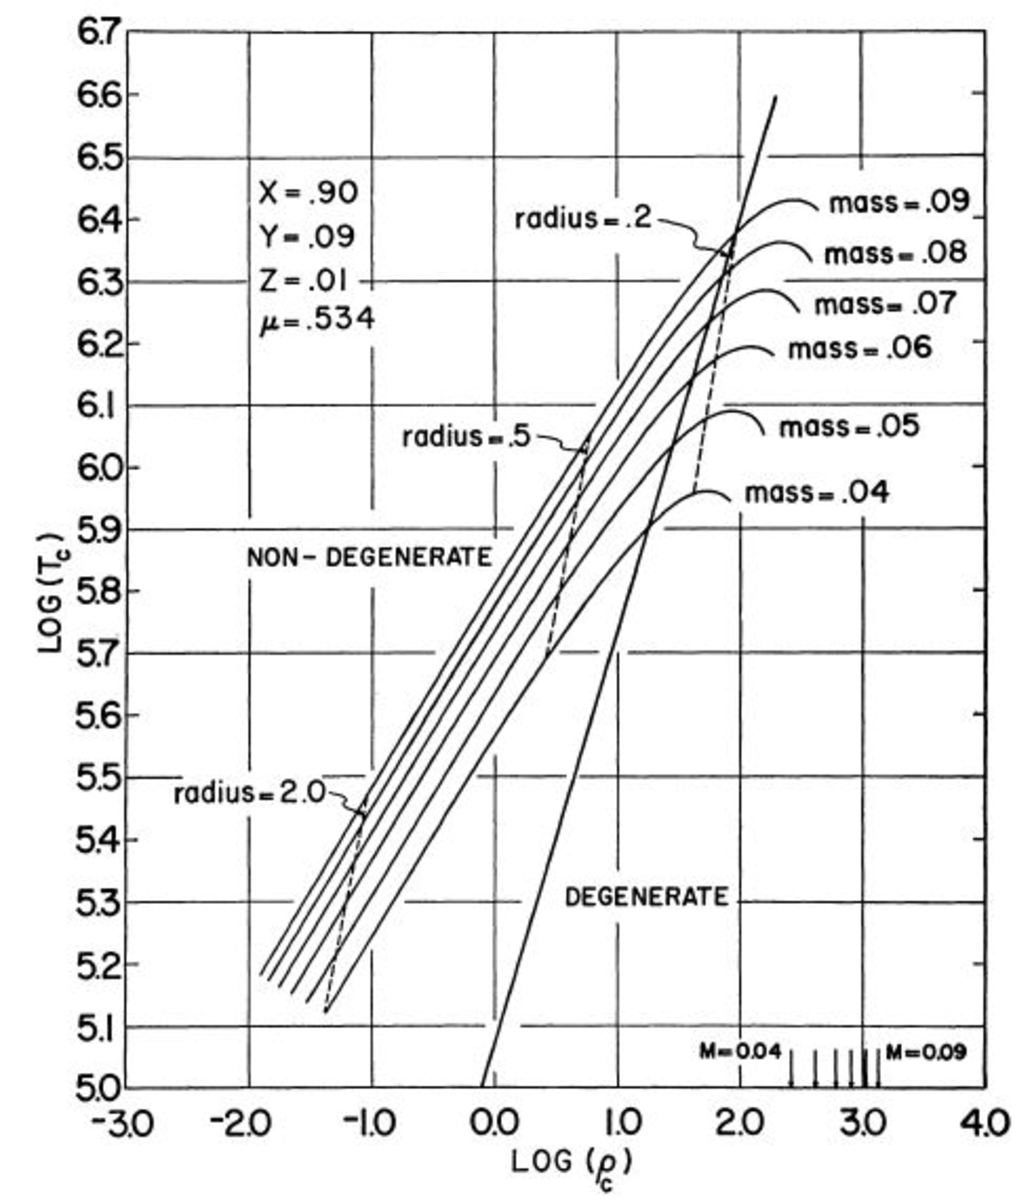 Chart showing similar information for Population II stars.